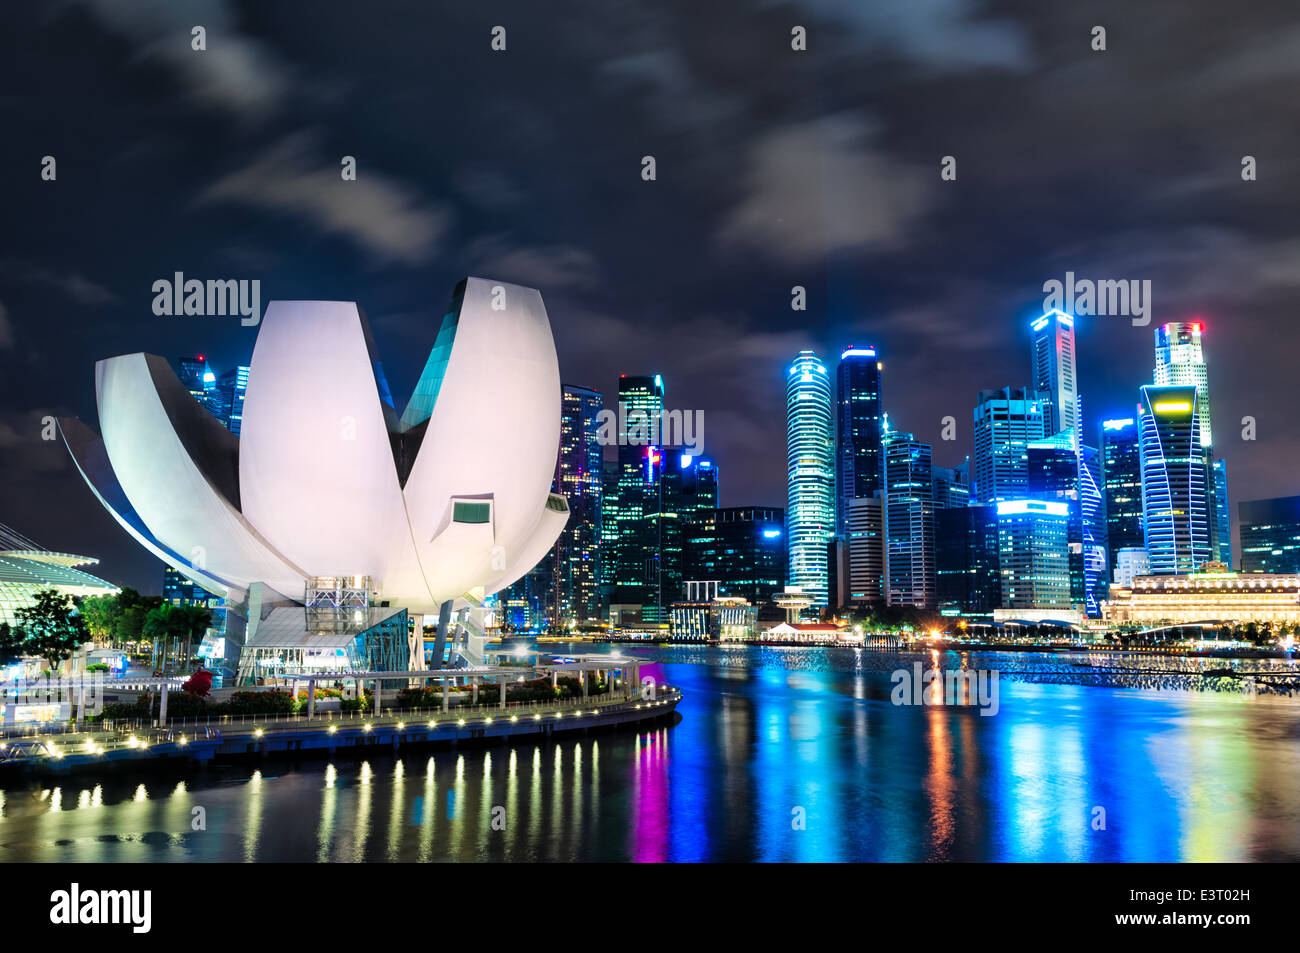 Le Singapore skyline at night avec le musée ArtScience au premier plan. Photo Stock